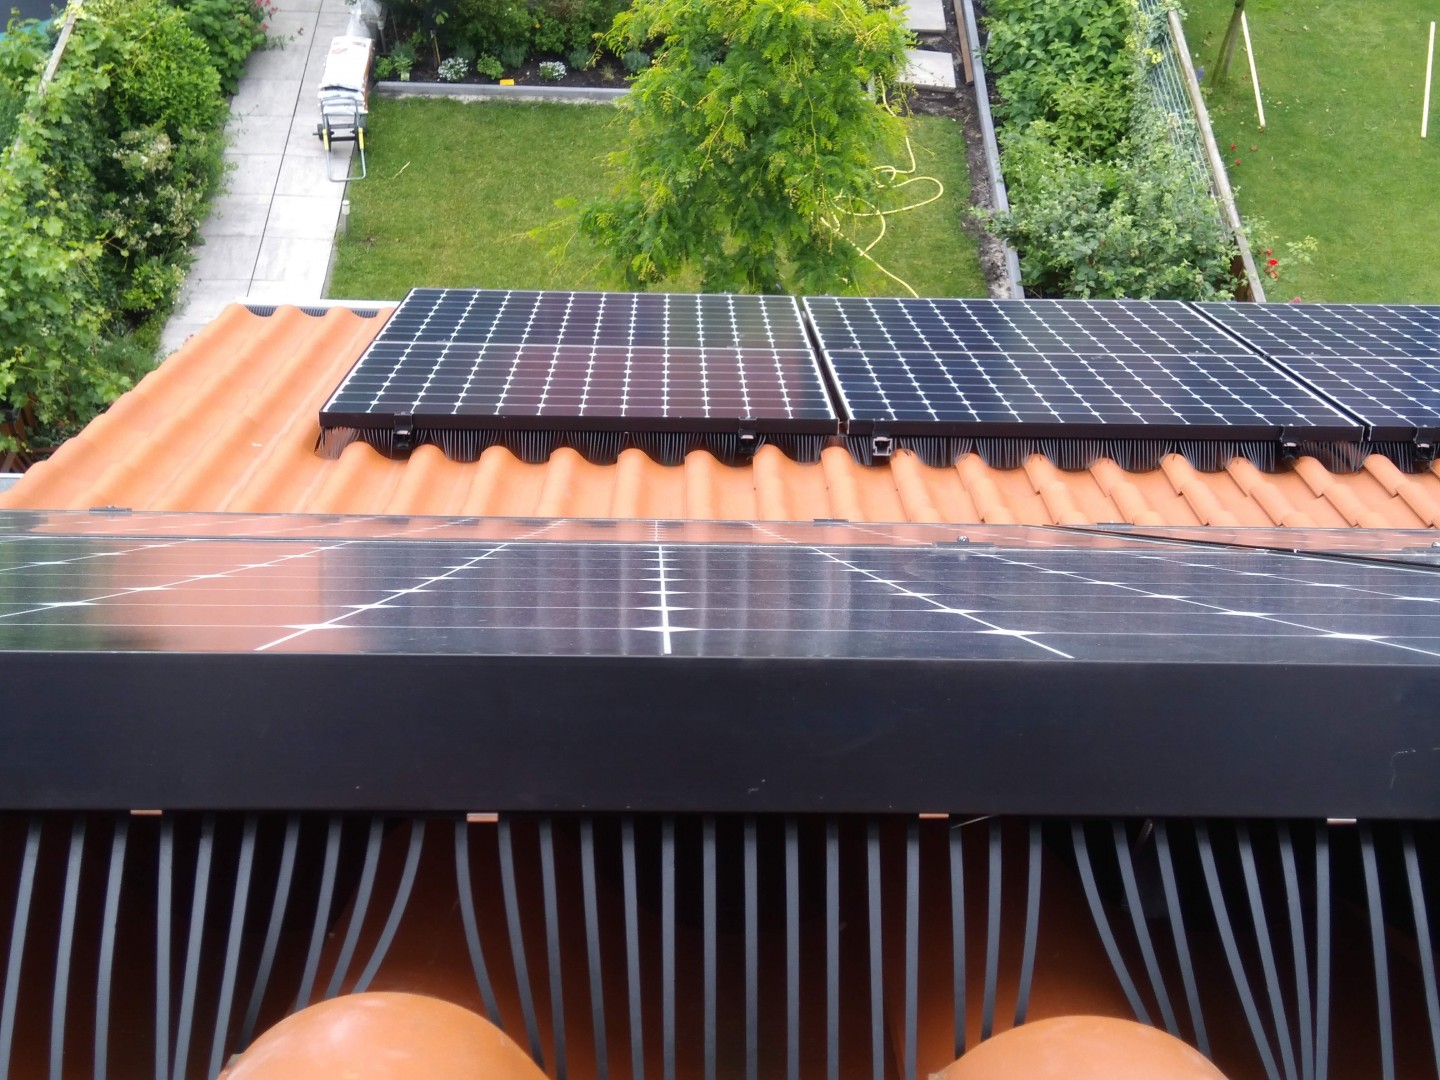 The BirdBlocker is supplied per linear metre and can be easily cut to size with large scissors or wire cutters and includes 7 stainless steel clips for securing the BirdBlocker. Image: Van der Valk Solar Systems